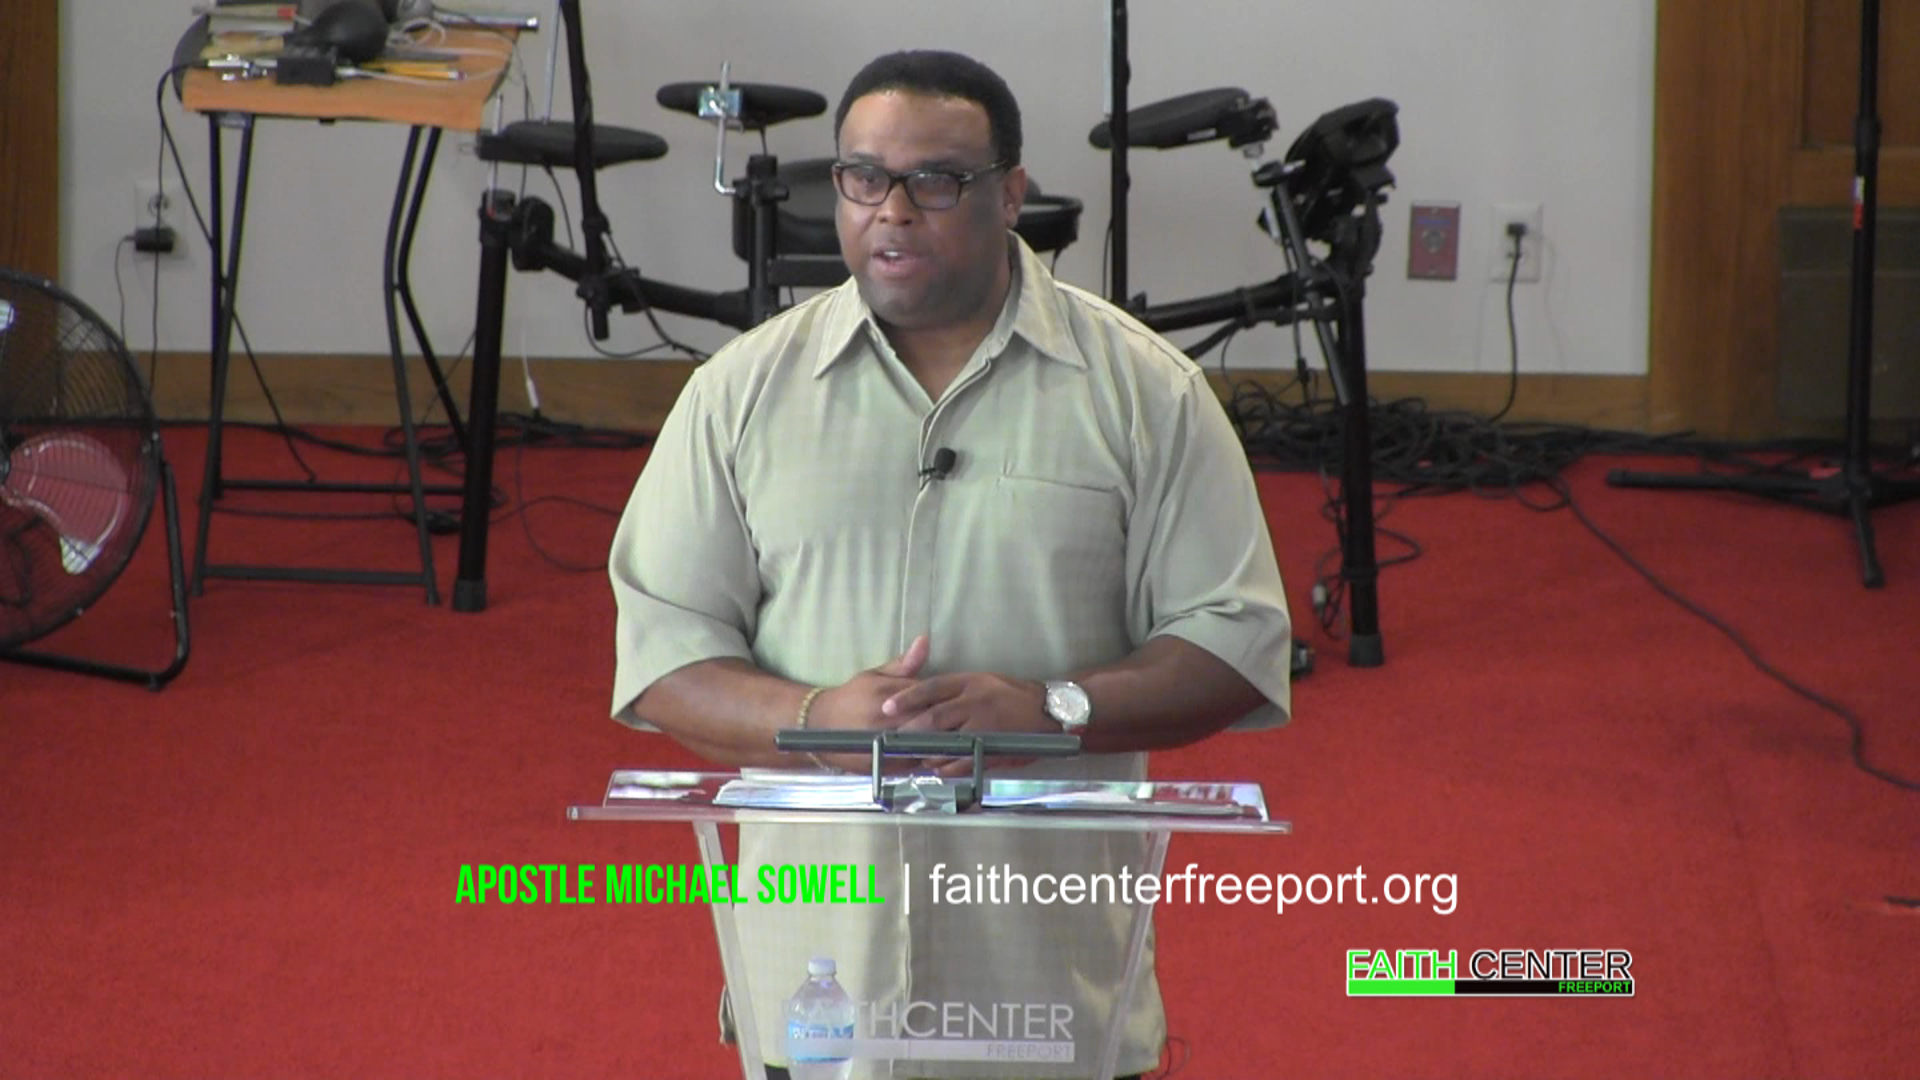 A New Way To Think – Apostle Michael Sowell